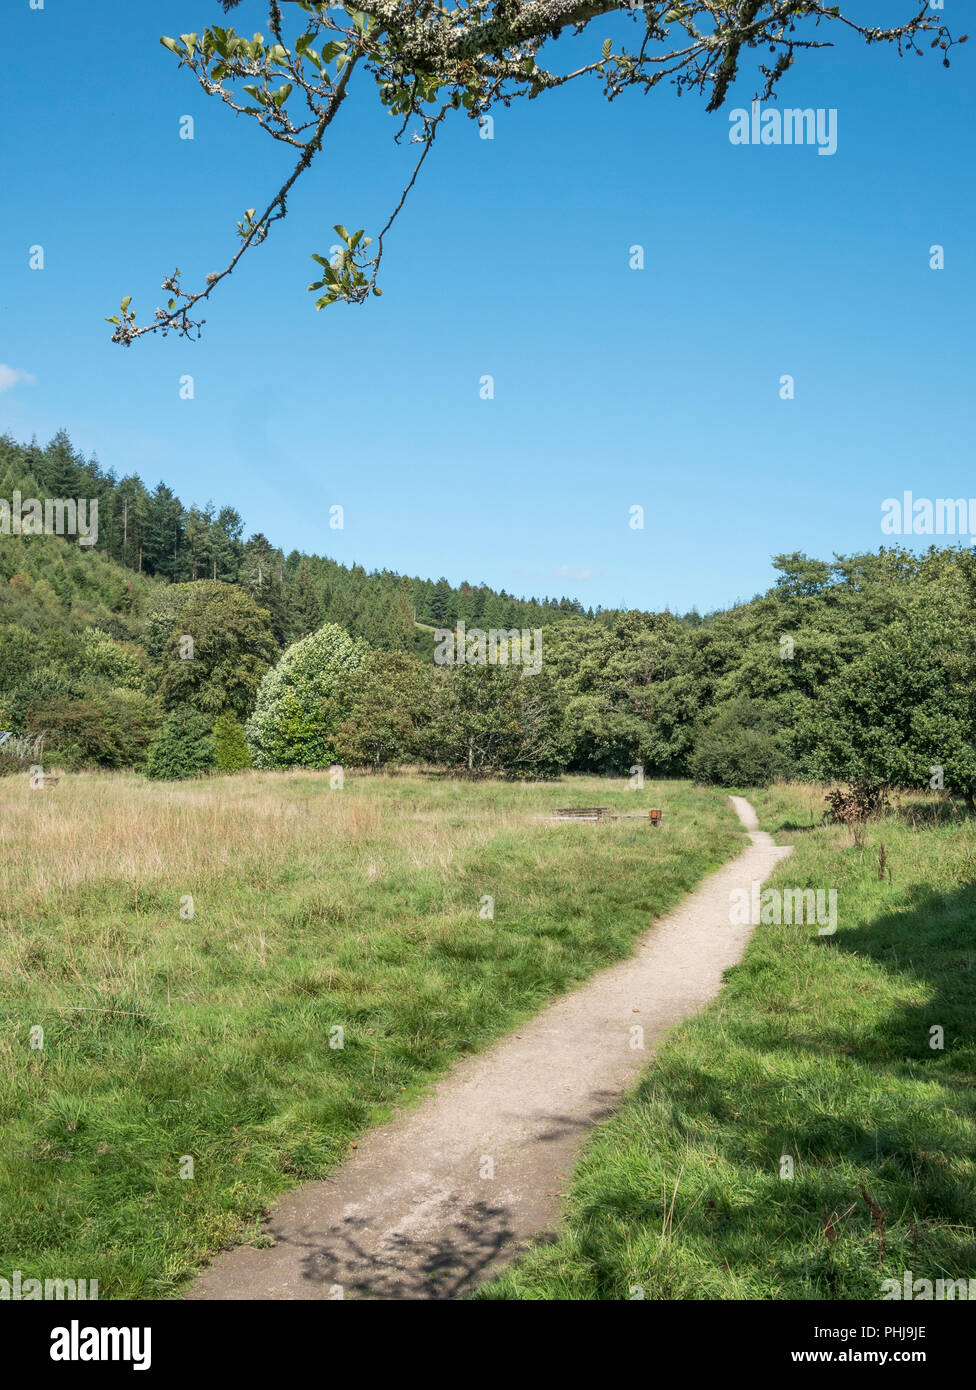 Footpath in the Cornish town of Lostwithiel. Long road ahead metaphor. - Stock Image